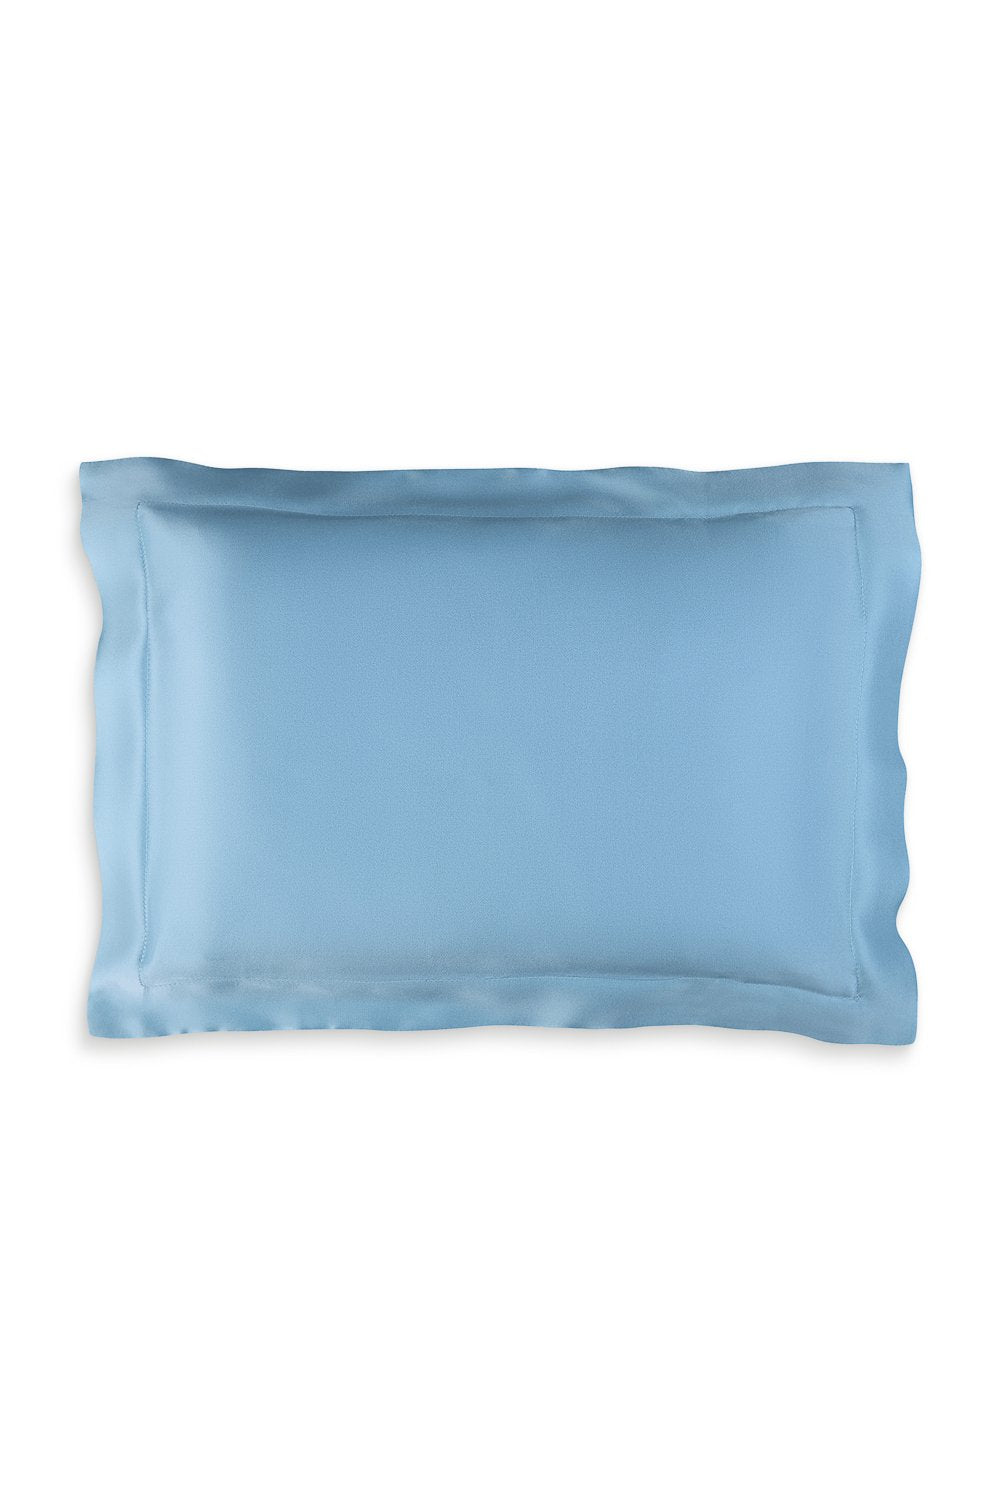 Baby/Travel Silk Pillow Set - silk&jam